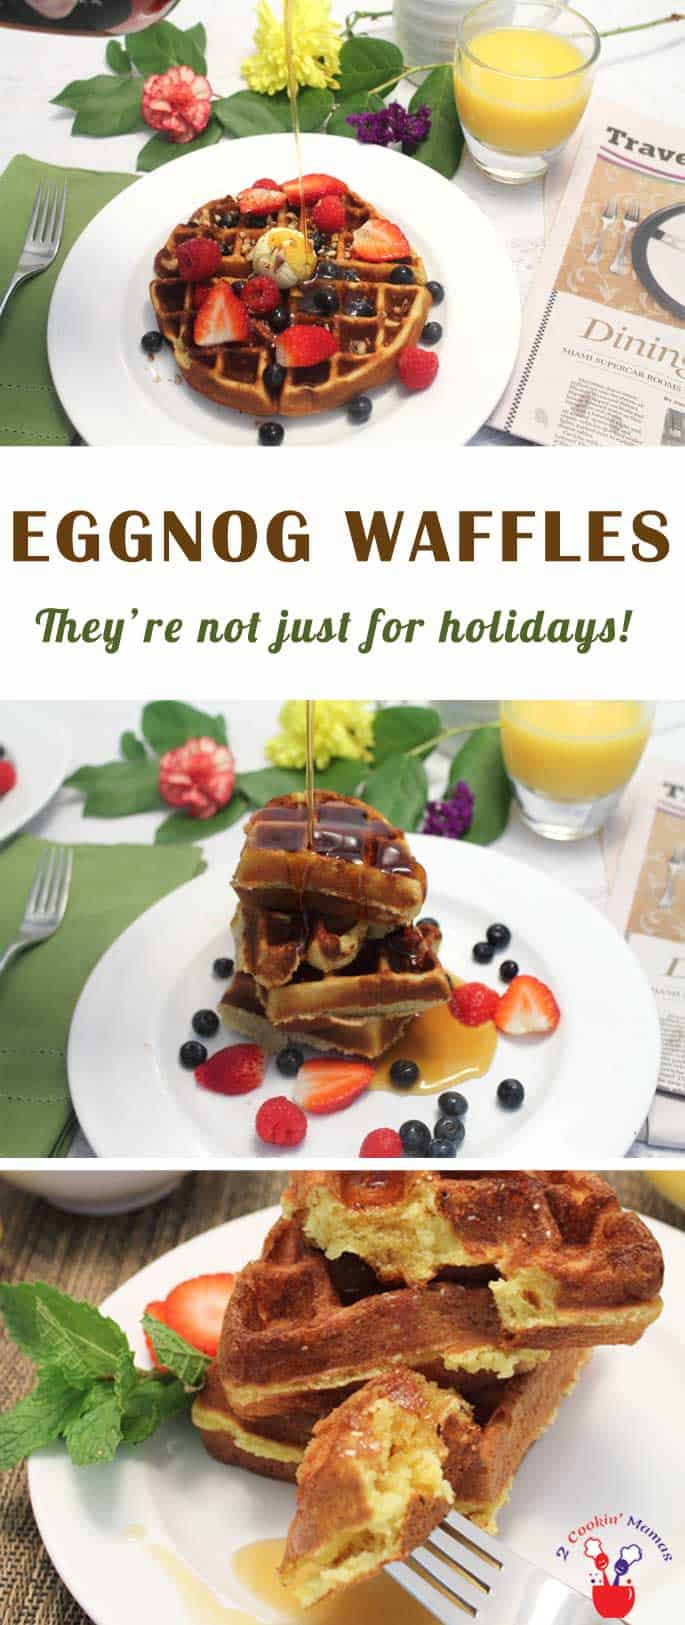 Eggnog Waffles   2 Cookin Mamas These eggnog waffles combine all your favorite flavors to make crispy on the outside, soft & delicious on-the-inside waffles. And they're gluten-free too!